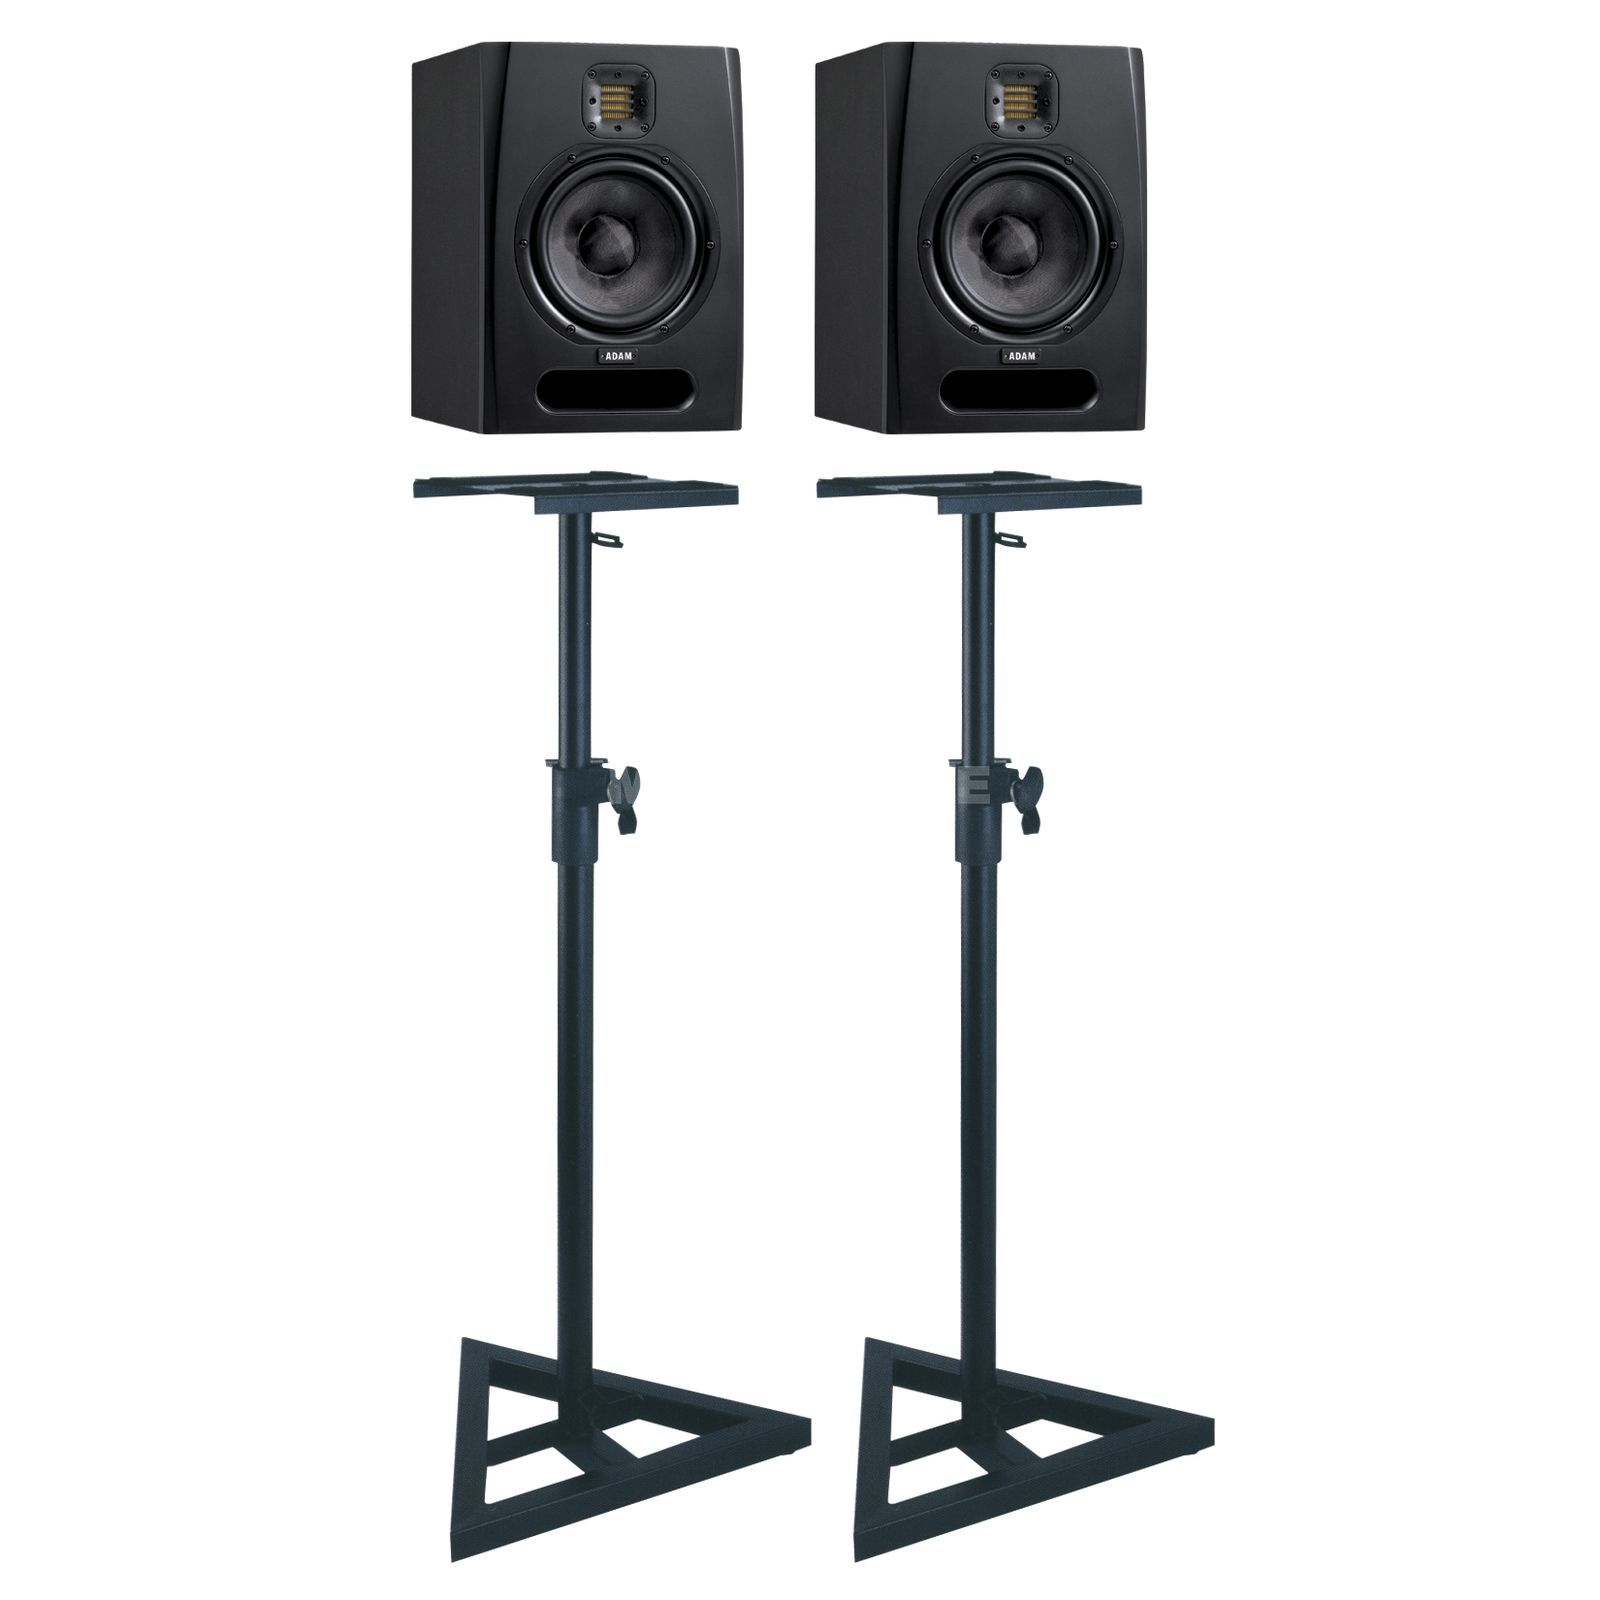 SET ADAM F7 + XLR Kabel + Fame Stands Bundle Produktbild